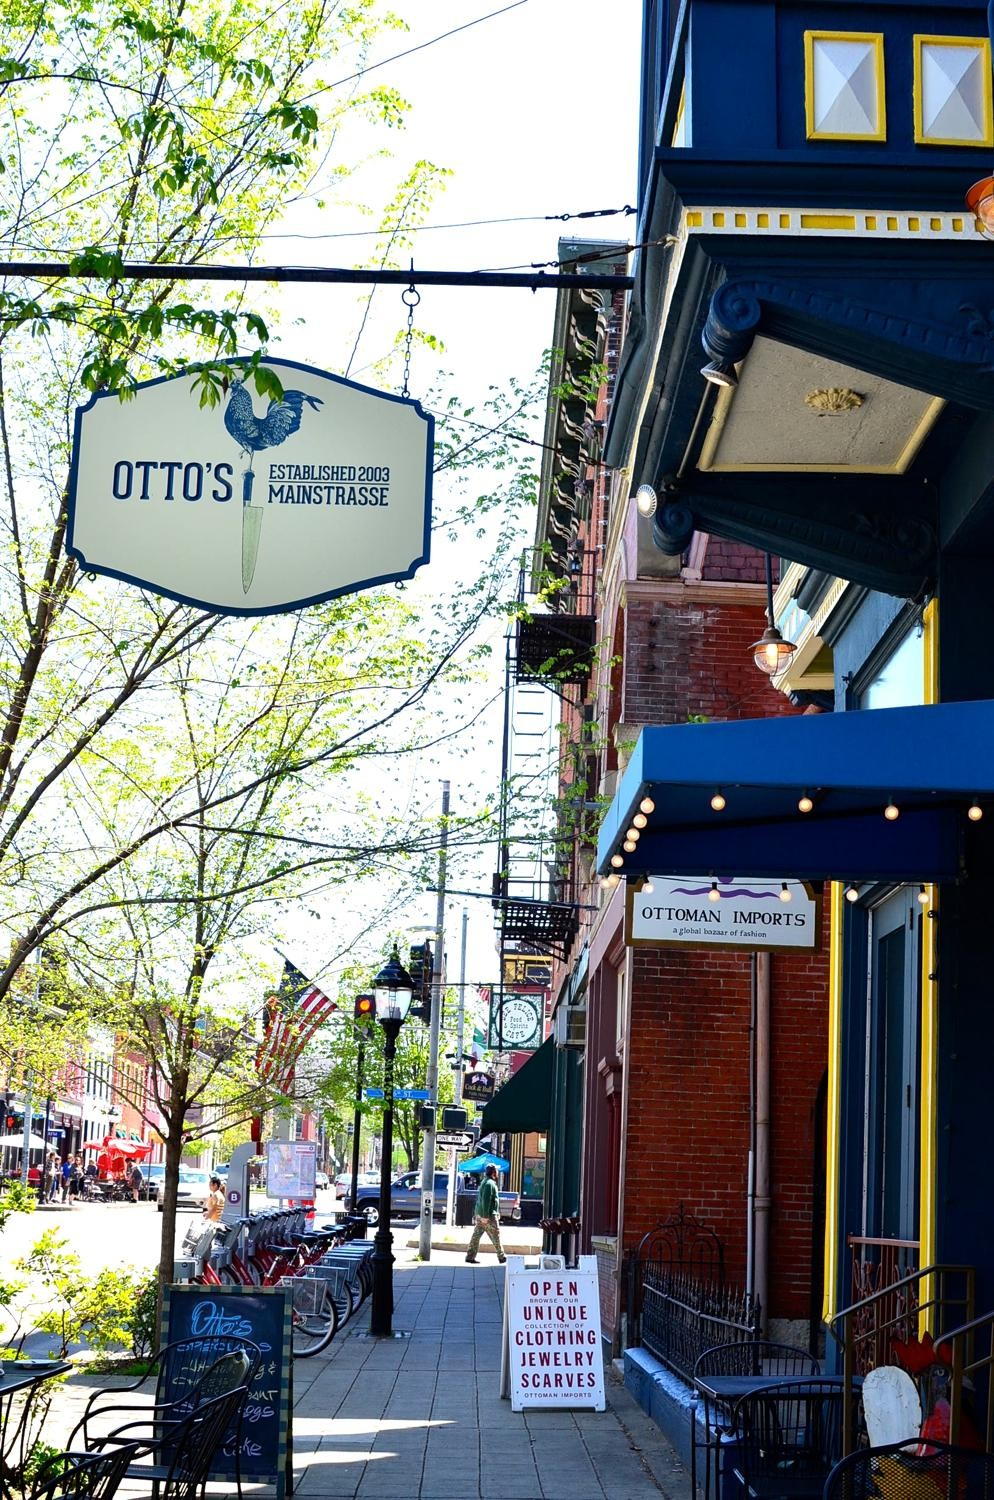 Otto's: deservedly known for its Sunday Brunch, undeservedly unknown for its dinner menu. Quaintly charming all the same. ADDRESS: 521 Main Street / Image: Leah Zipperstein, Cincinnati Refined // Published: 1.6.17